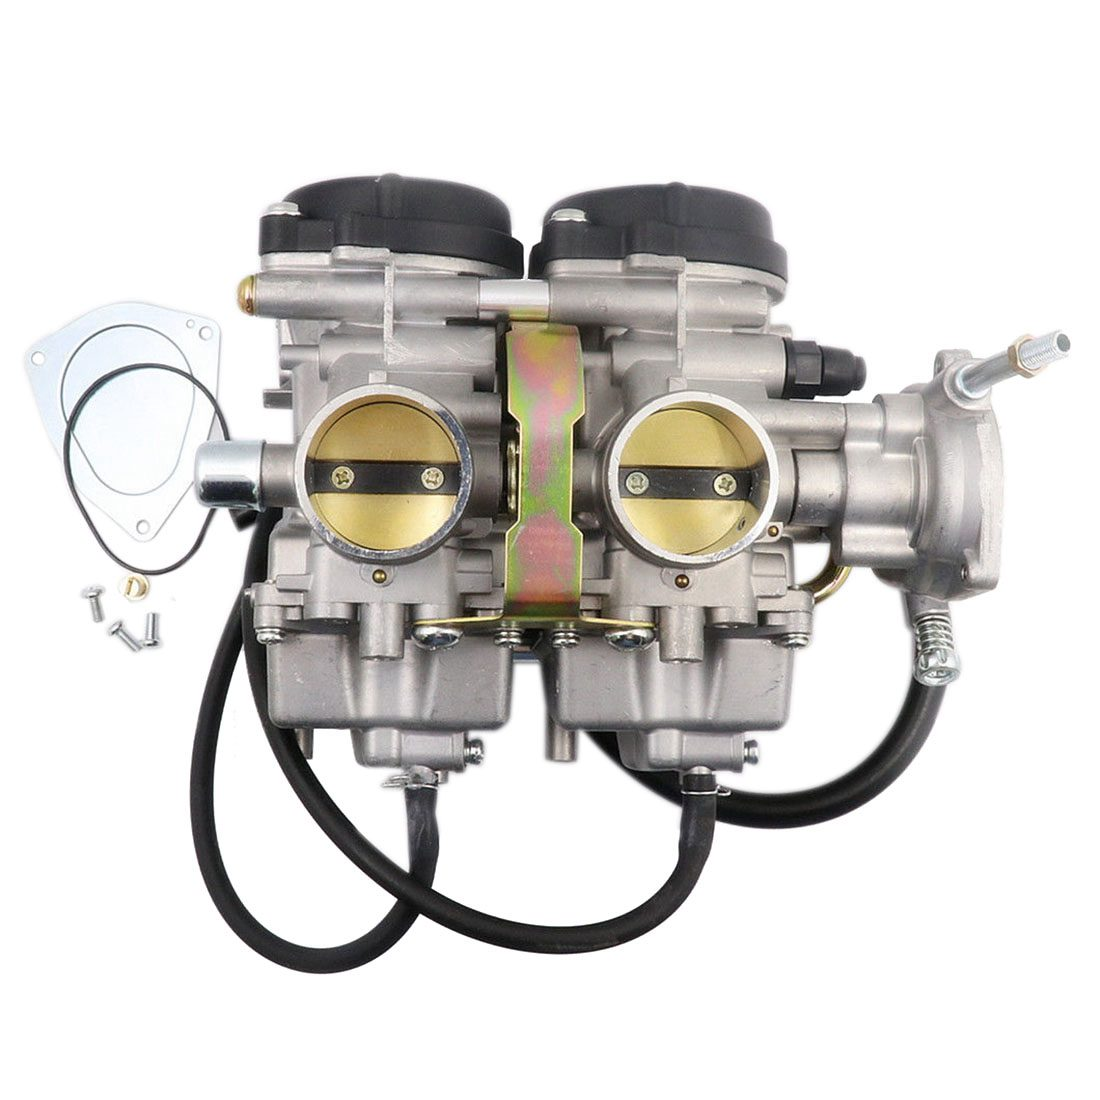 AUTO -New Carburetor for YAMAHA RAPTOR 660 YFM660 2001-2005 Carb trx 500 foreman carburetor carb 2005 2011 brand new highest quality